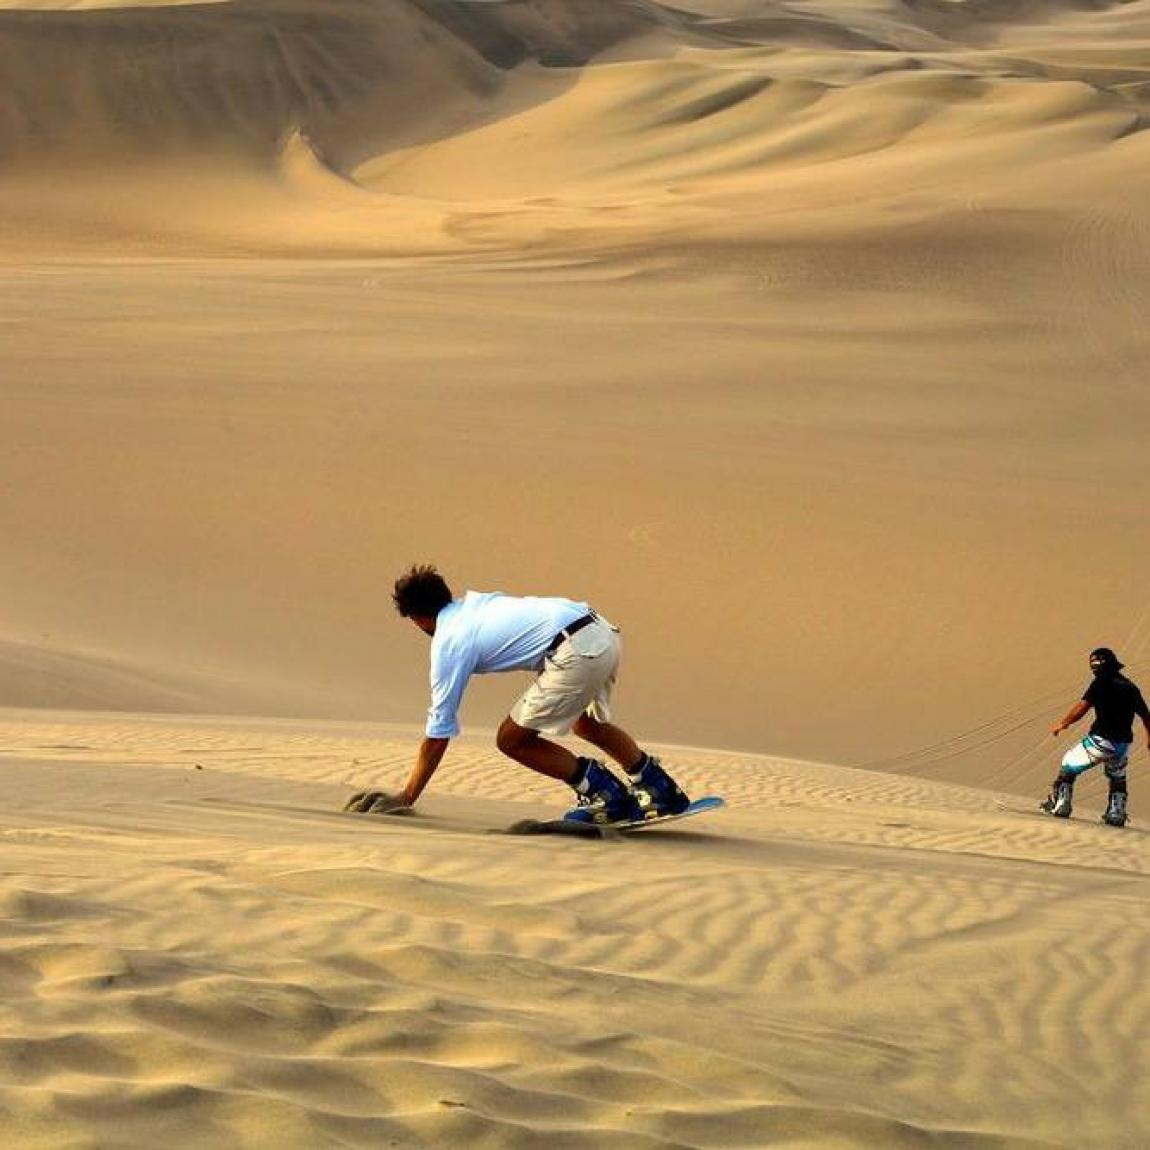 Best Reasons To Visit Parangkusumo Sand Dunes